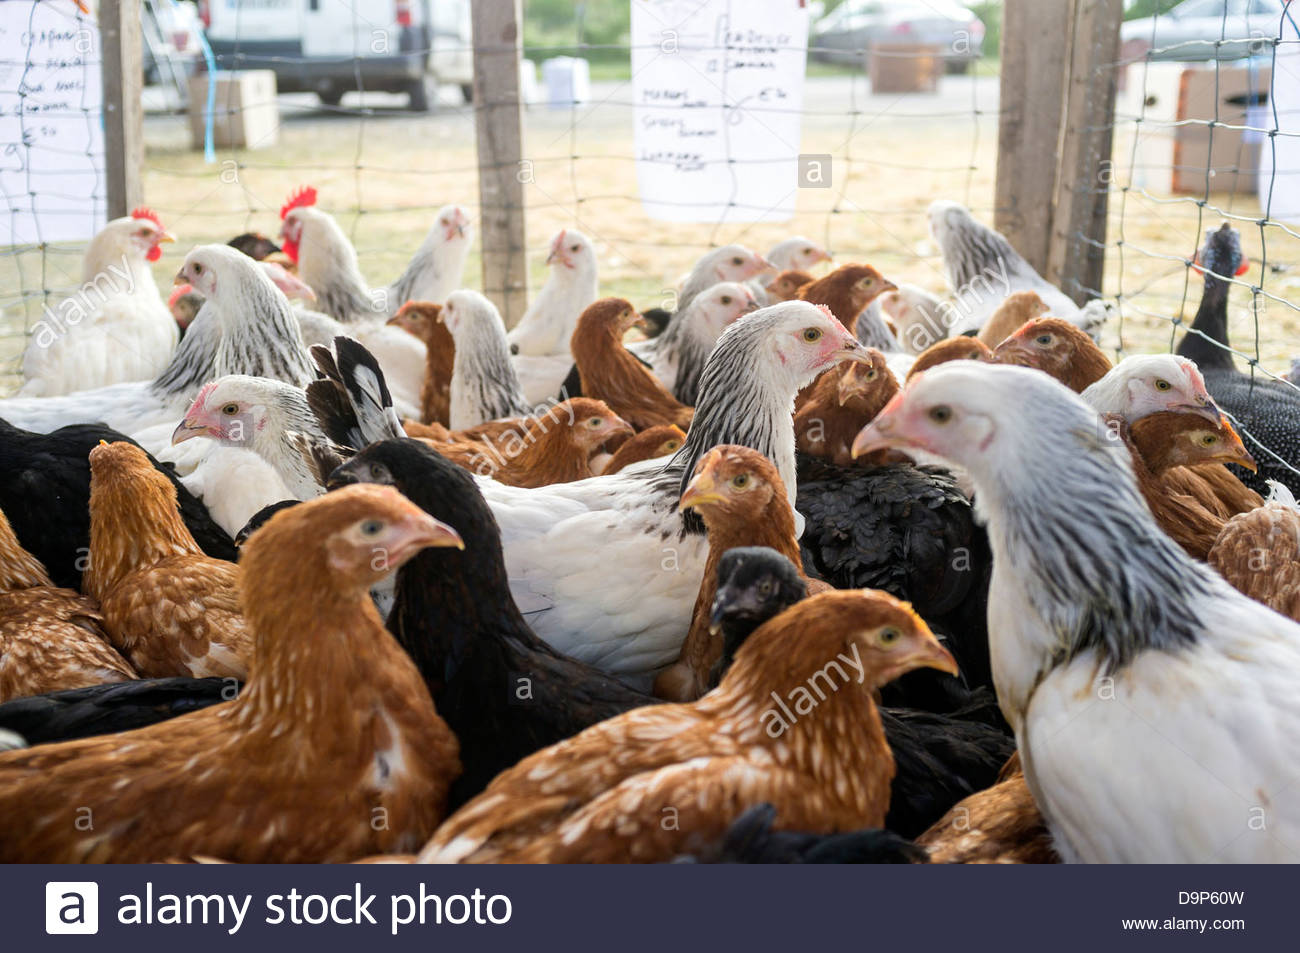 Young chickens for sale at Les Hérolles poultry market, Les Hérolles, Vienne, Poitou-Charentes, France - Stock Image